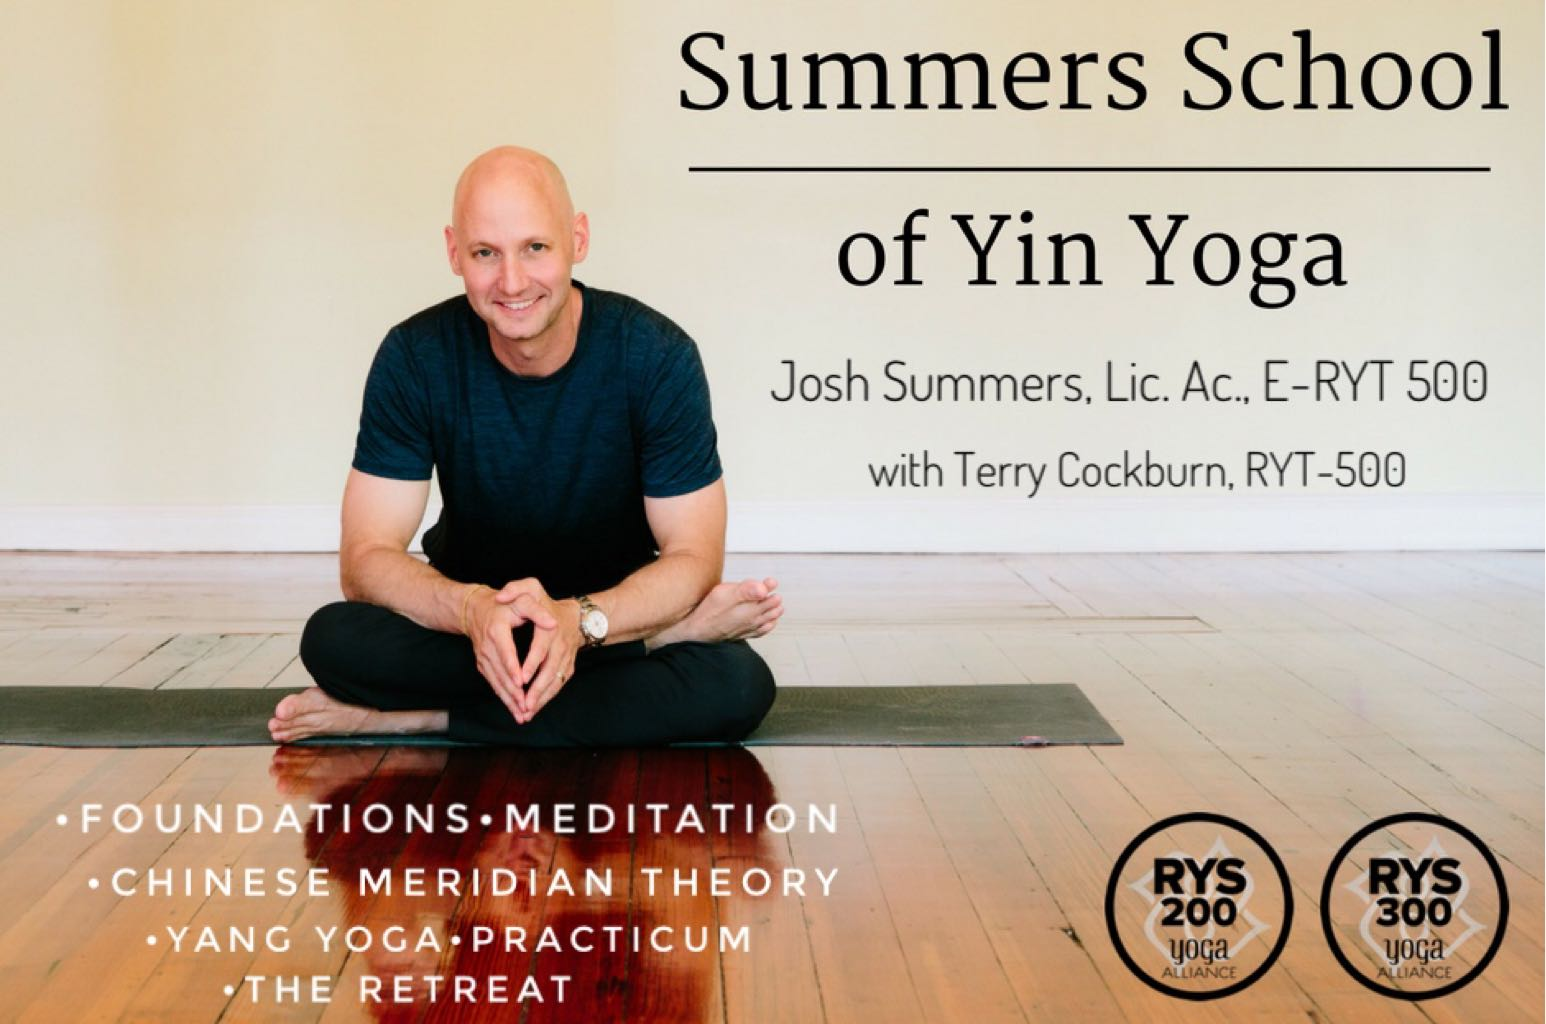 Summers School of Yin Yoga